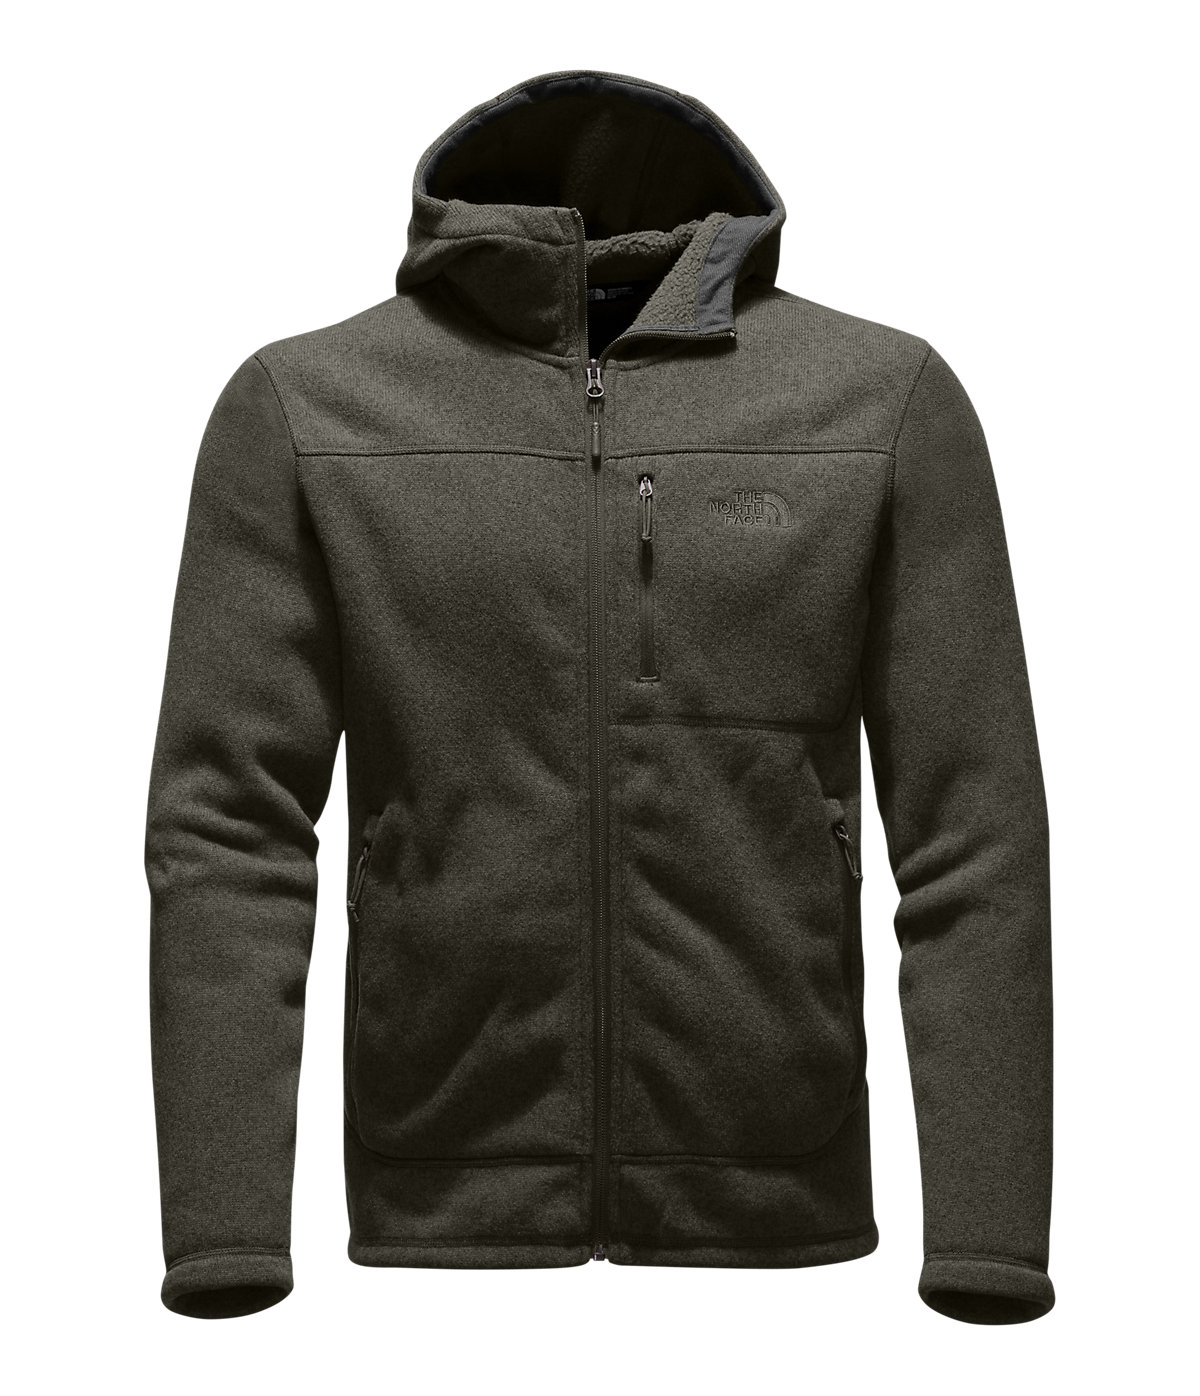 182e08ea58b6 The North Face Men s Gordon Lyons Hoodie